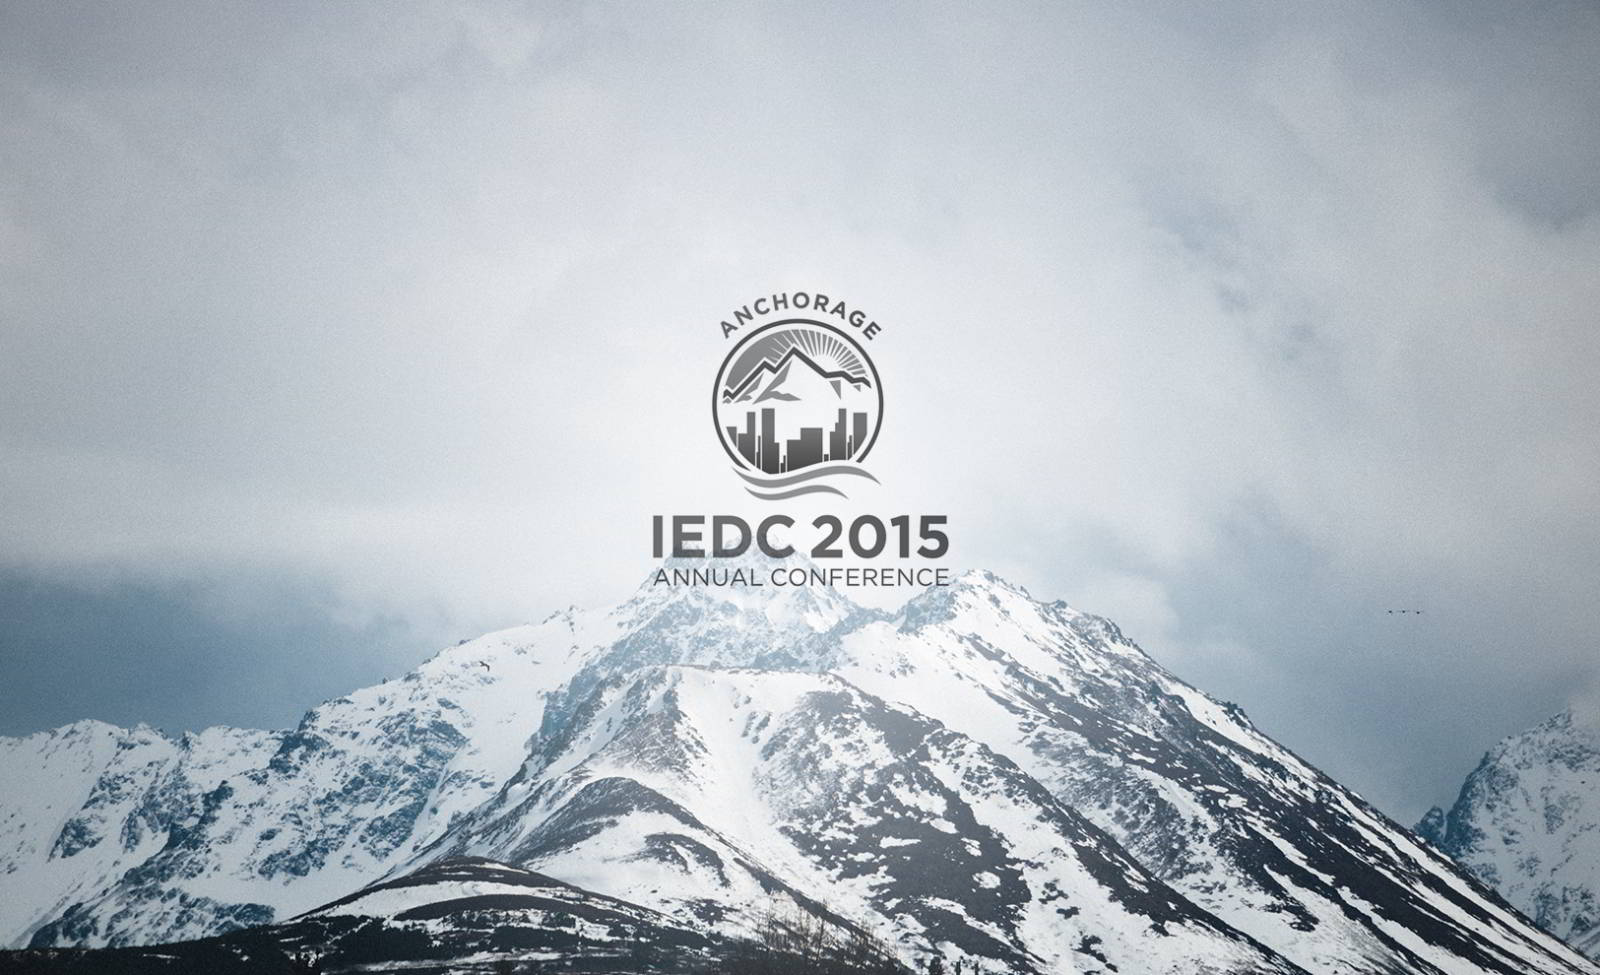 ResearchFDI set to attend the IEDC 2015 Annual Conference